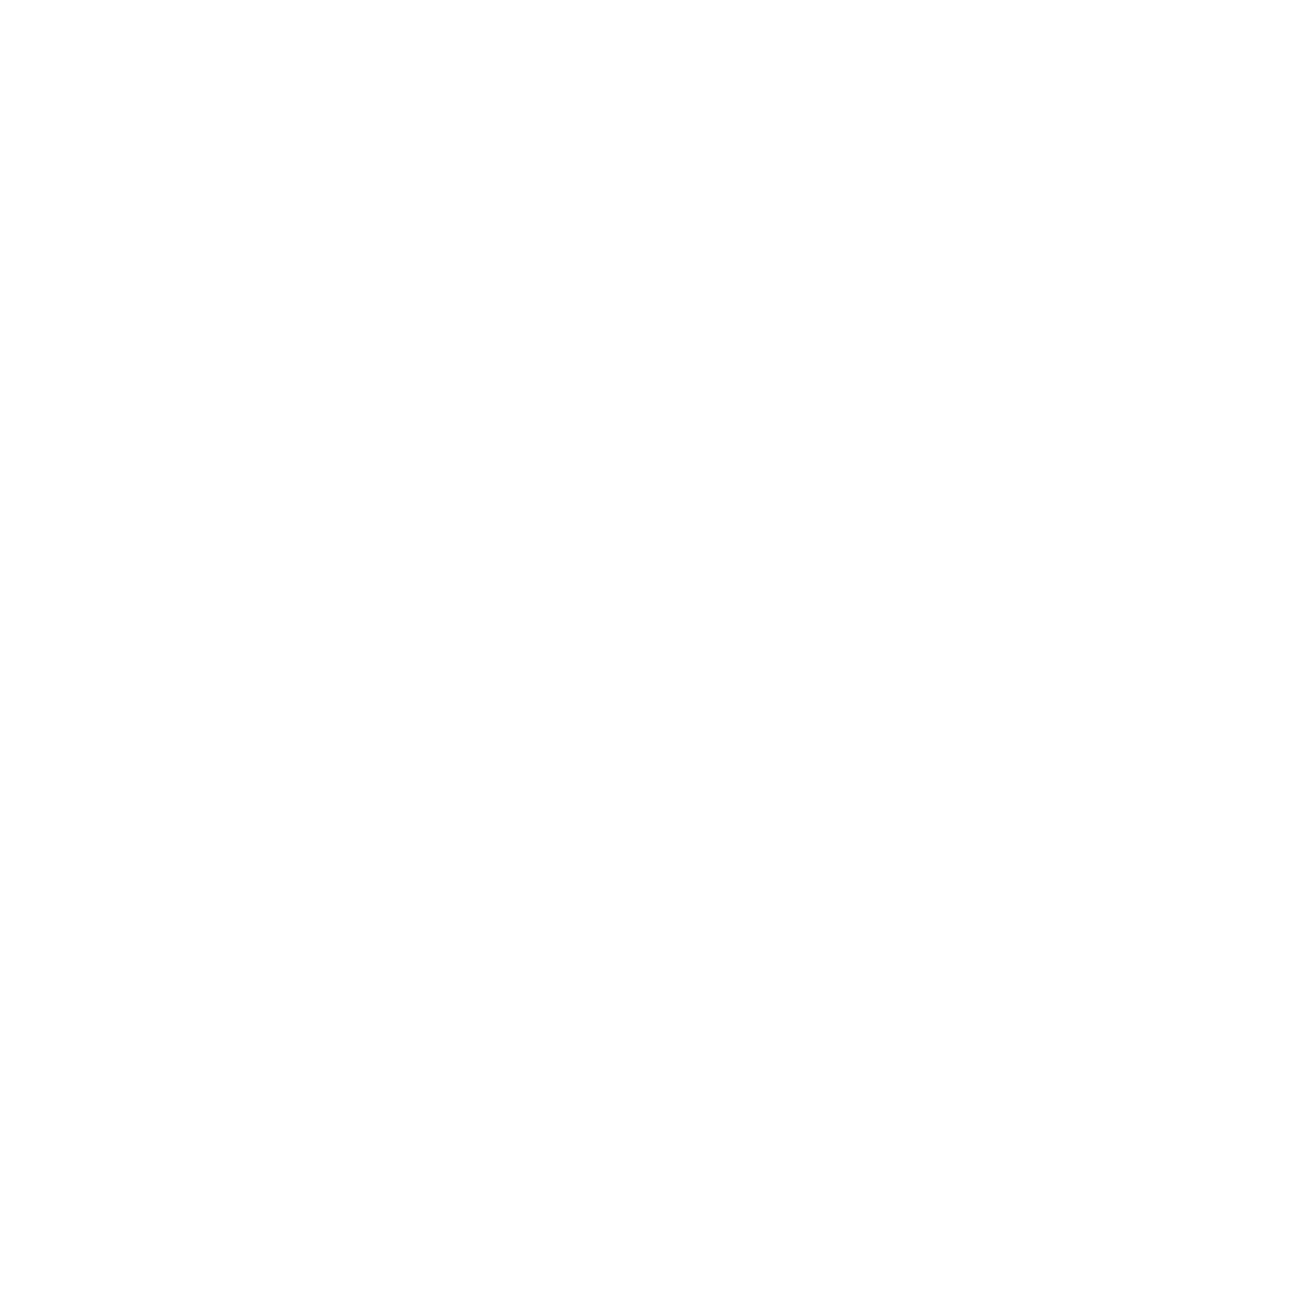 Wordpress Logo Clipart Lion Lion Head Silhouette Png Transparent Cartoon Jing Fm Use it in your personal projects or share it as a cool sticker on tumblr, whatsapp, facebook messenger, wechat, twitter or in other messaging apps. wordpress logo clipart lion lion head